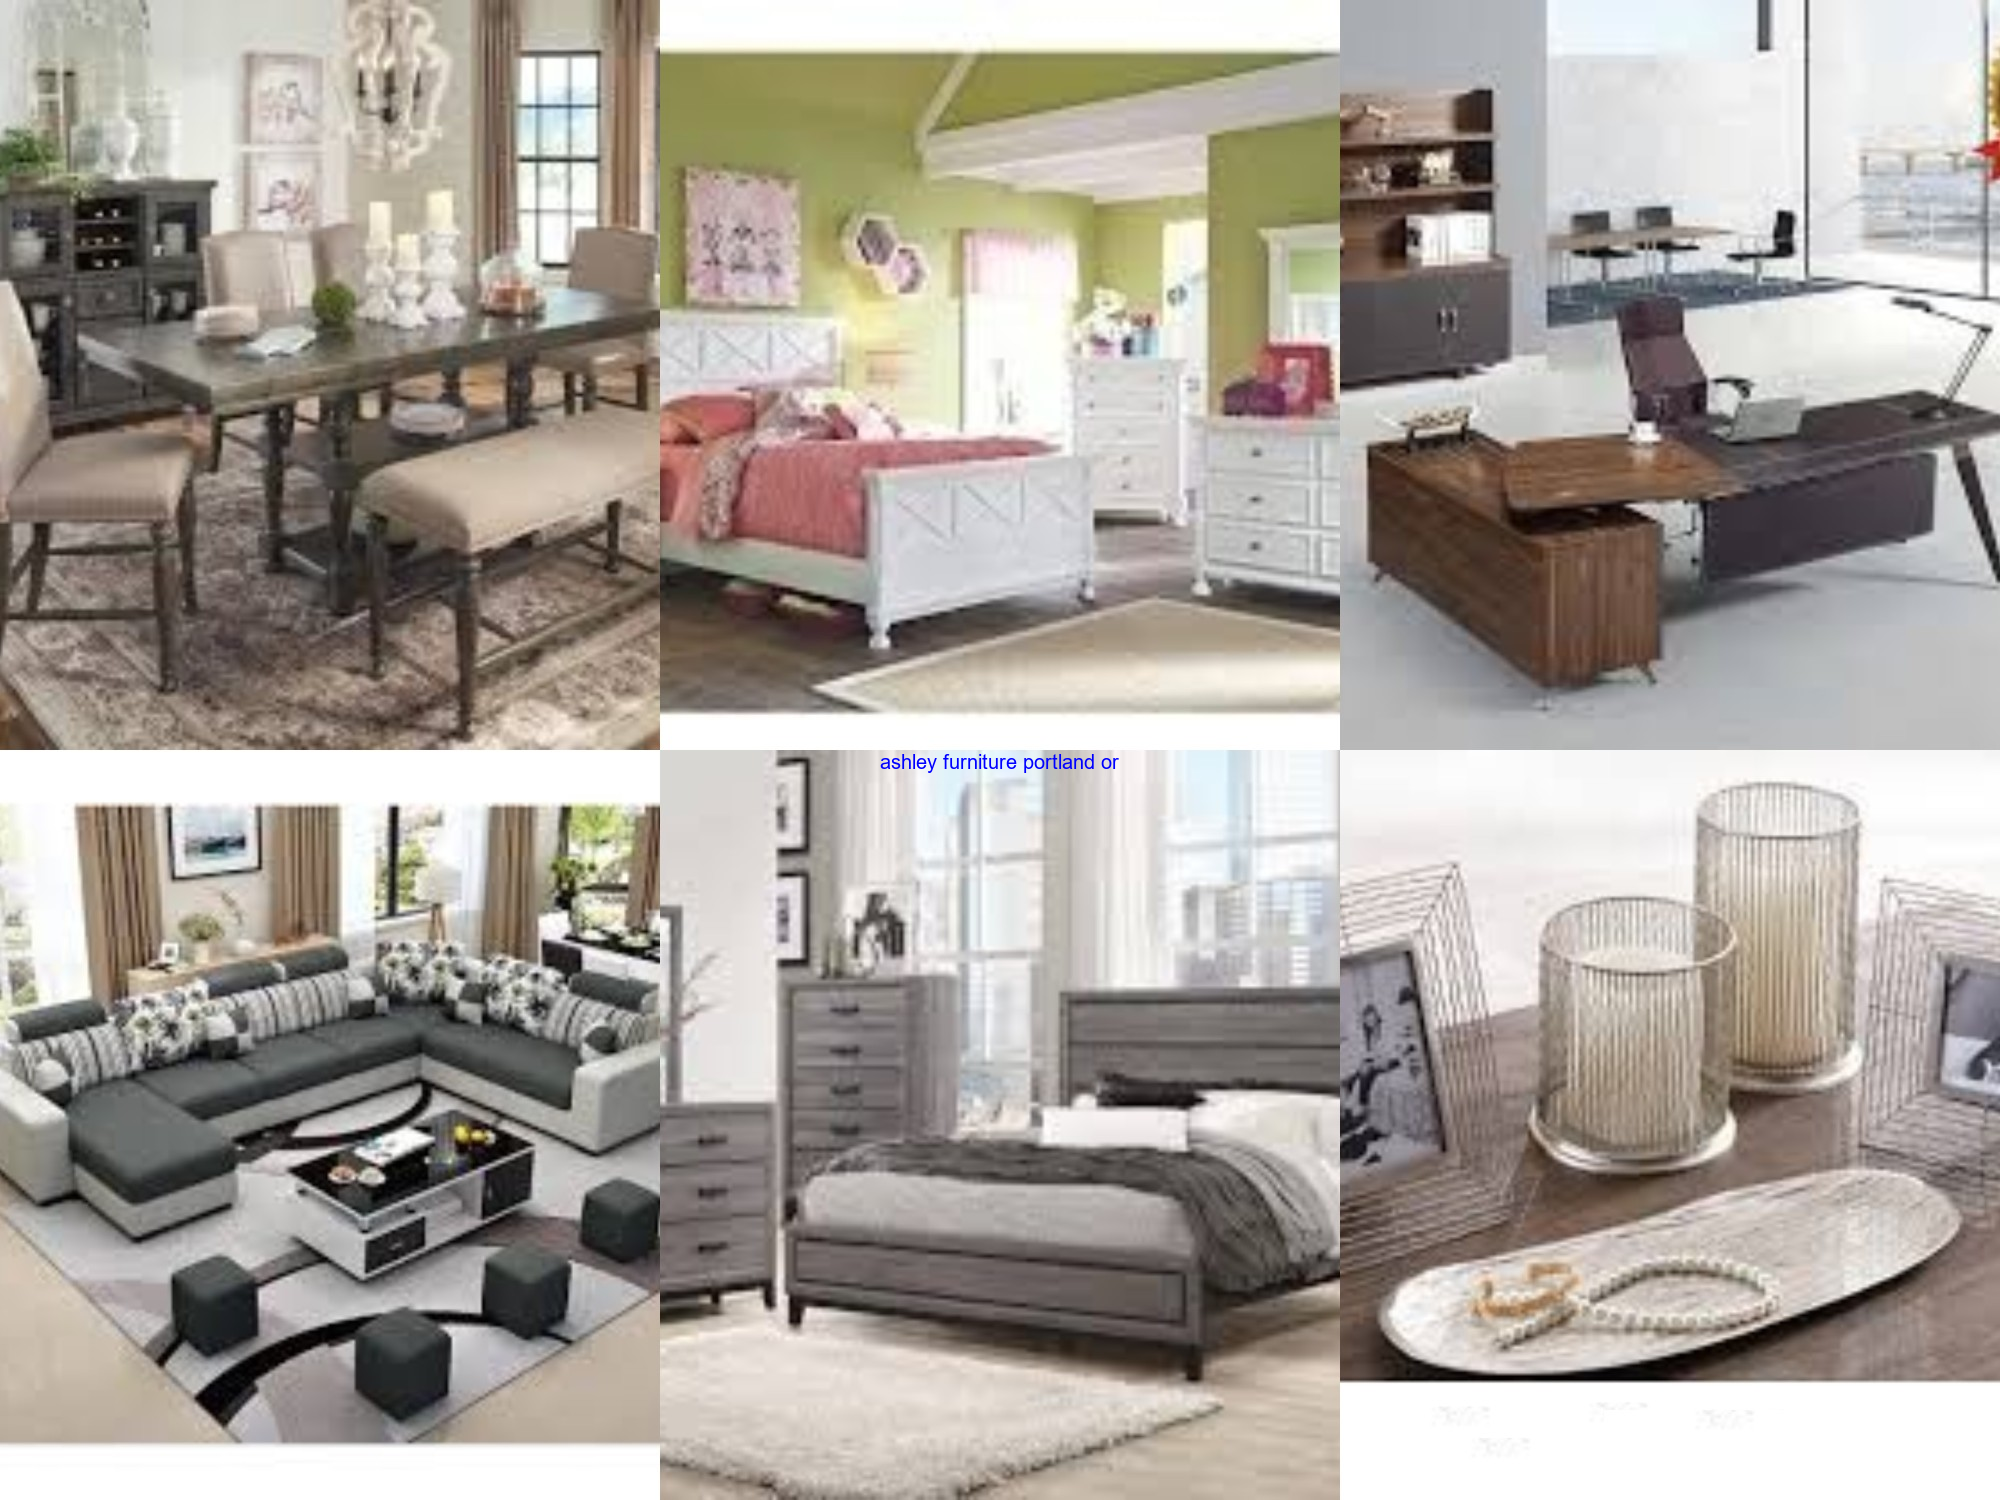 Ashley Furniture Portland Or In 2020 Furniture Prices Ashley Furniture Furniture Reviews